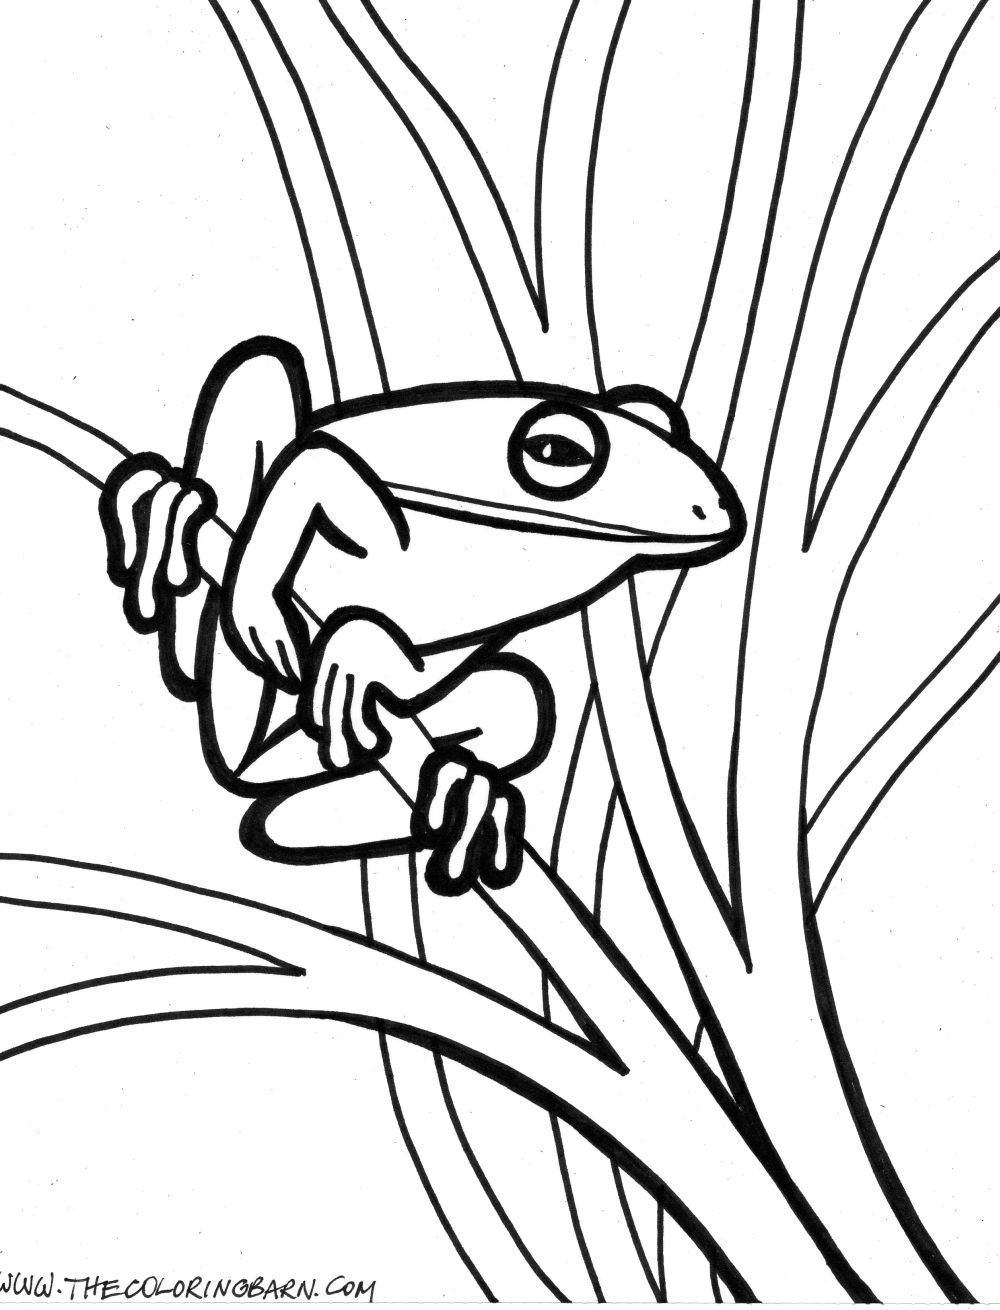 green tree frog coloring page free frog coloring pages frog page green tree coloring